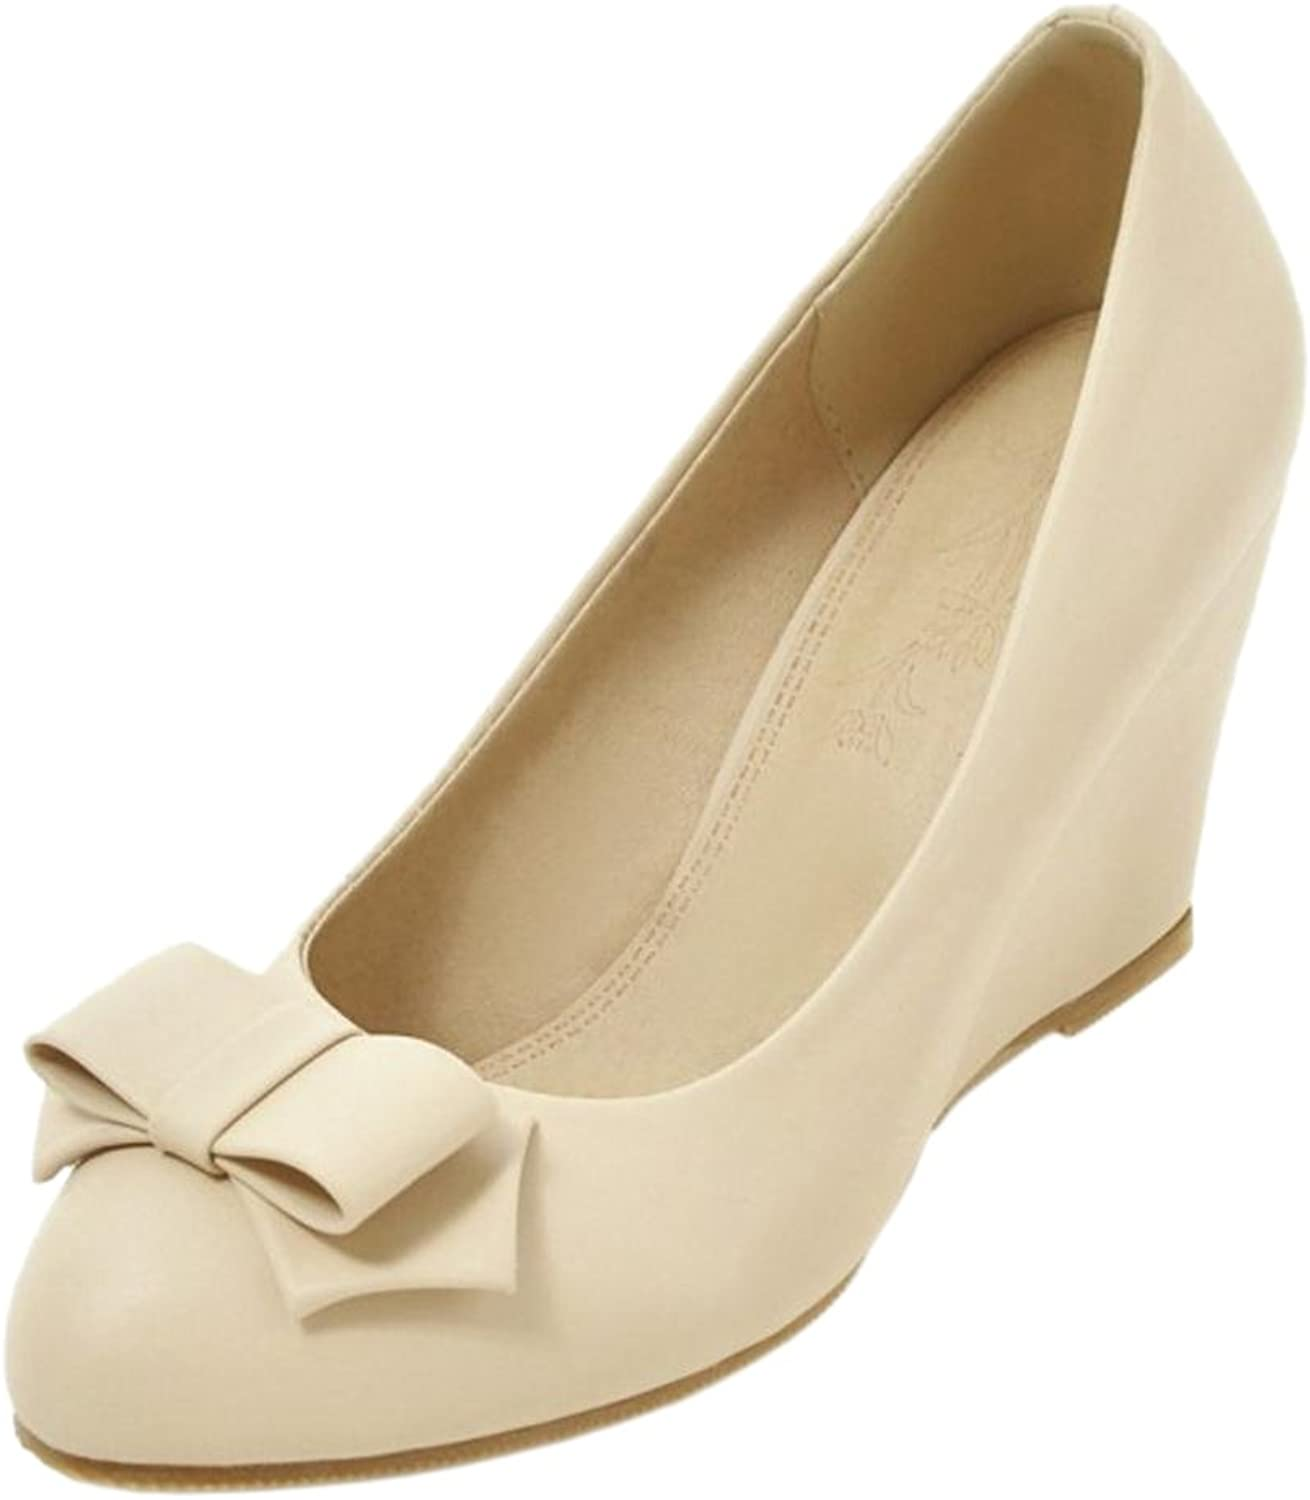 AicciAizzi Women Solid Wedge Heel Pumps Bow